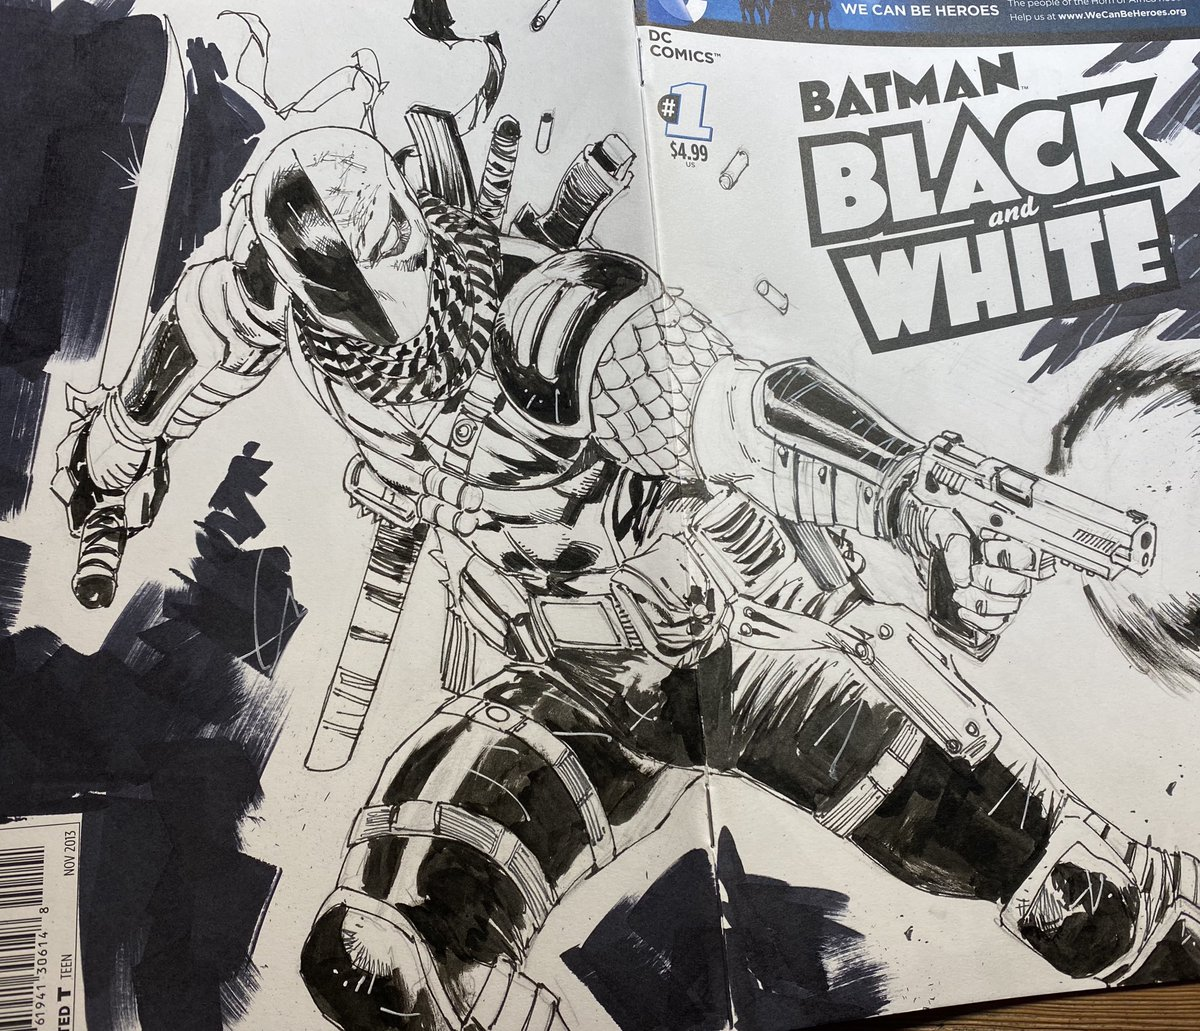 #Deathstroke commission on blank cover.  (Already sold) #Batman #DC #inkpic.twitter.com/397tdzJapy